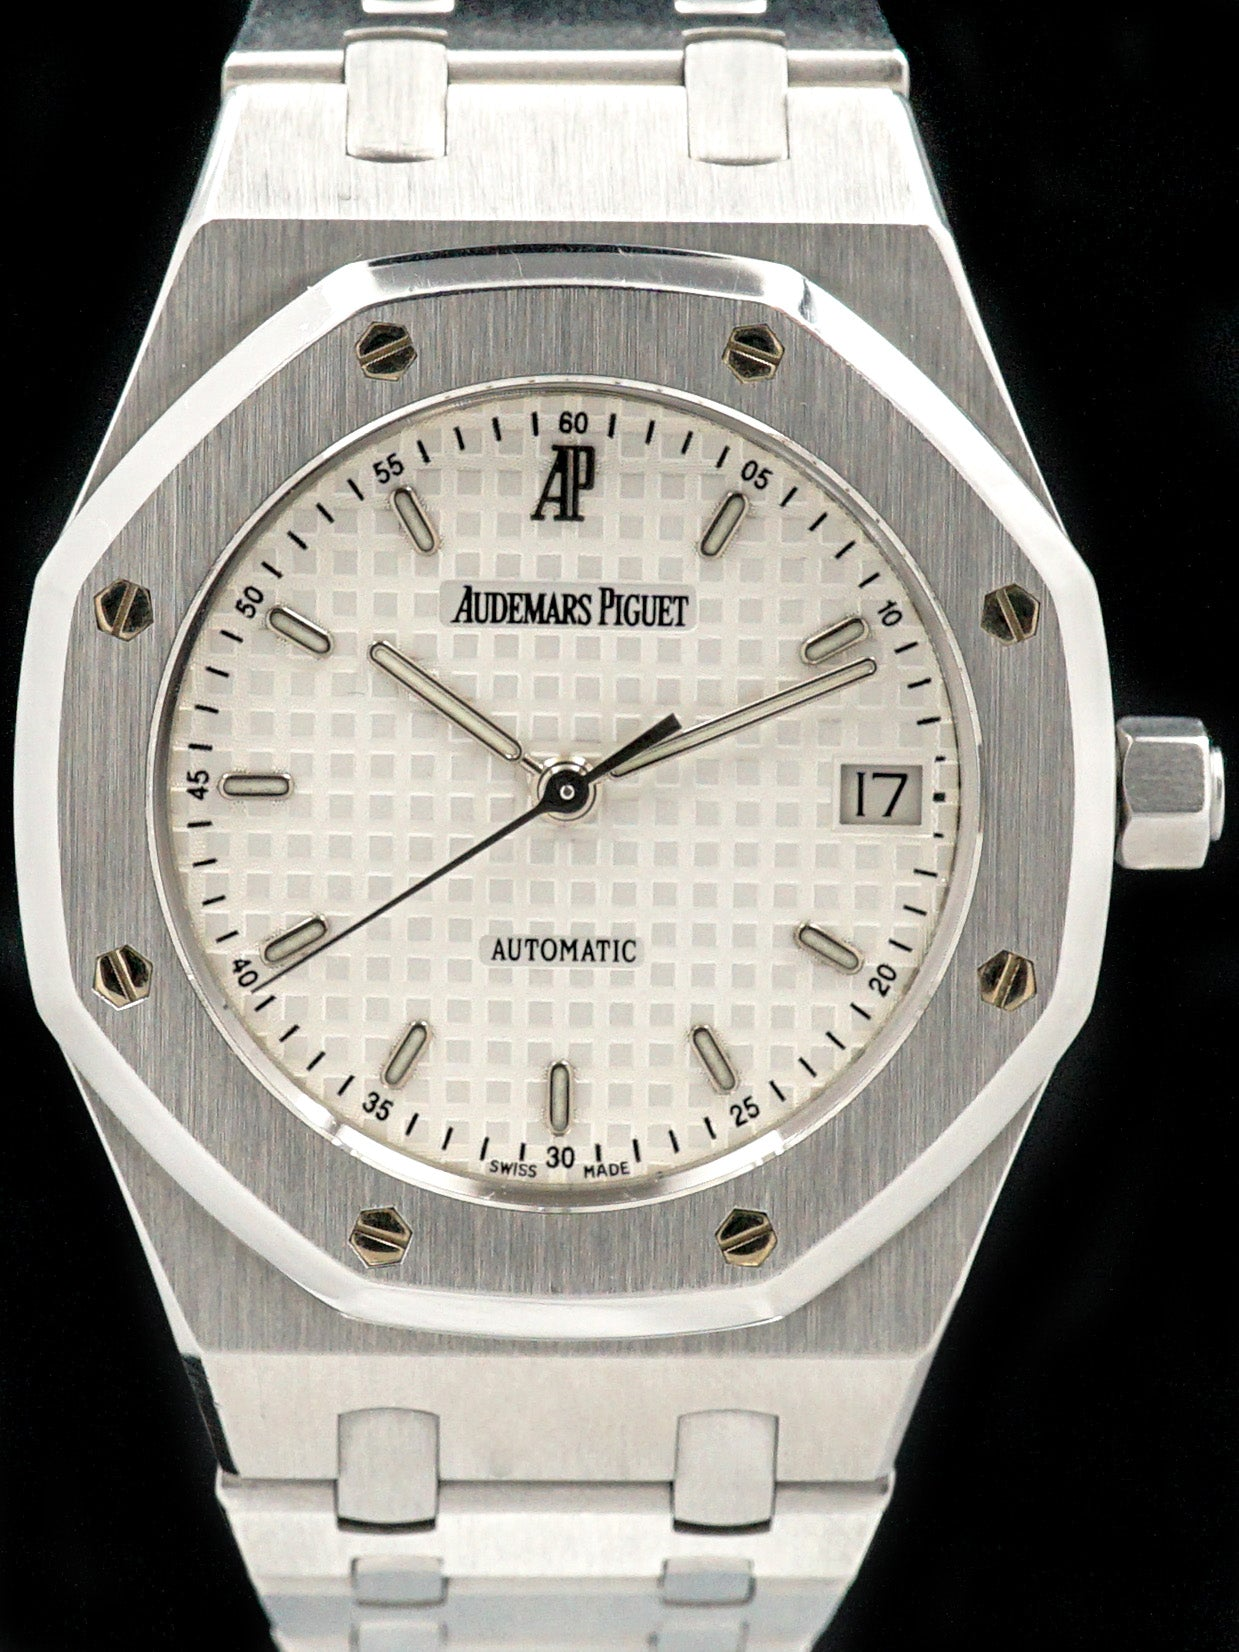 Audemars Piguet Royal Oak Ref. 14790ST